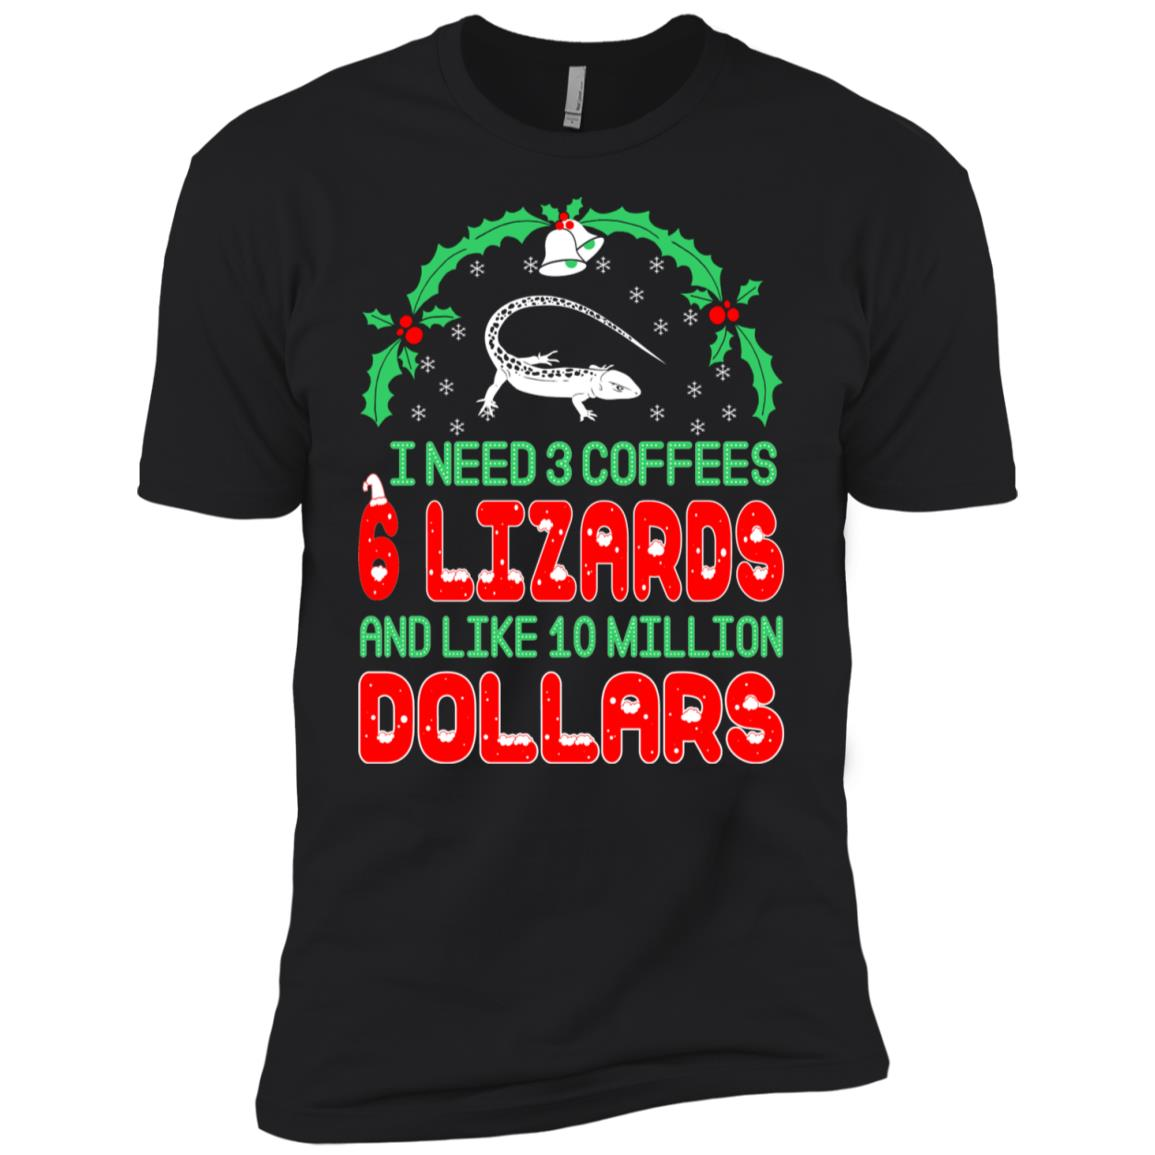 Need 3 Coffees 6 Lizards Christmas Ugly Sweater-1 Men Short Sleeve T-Shirt